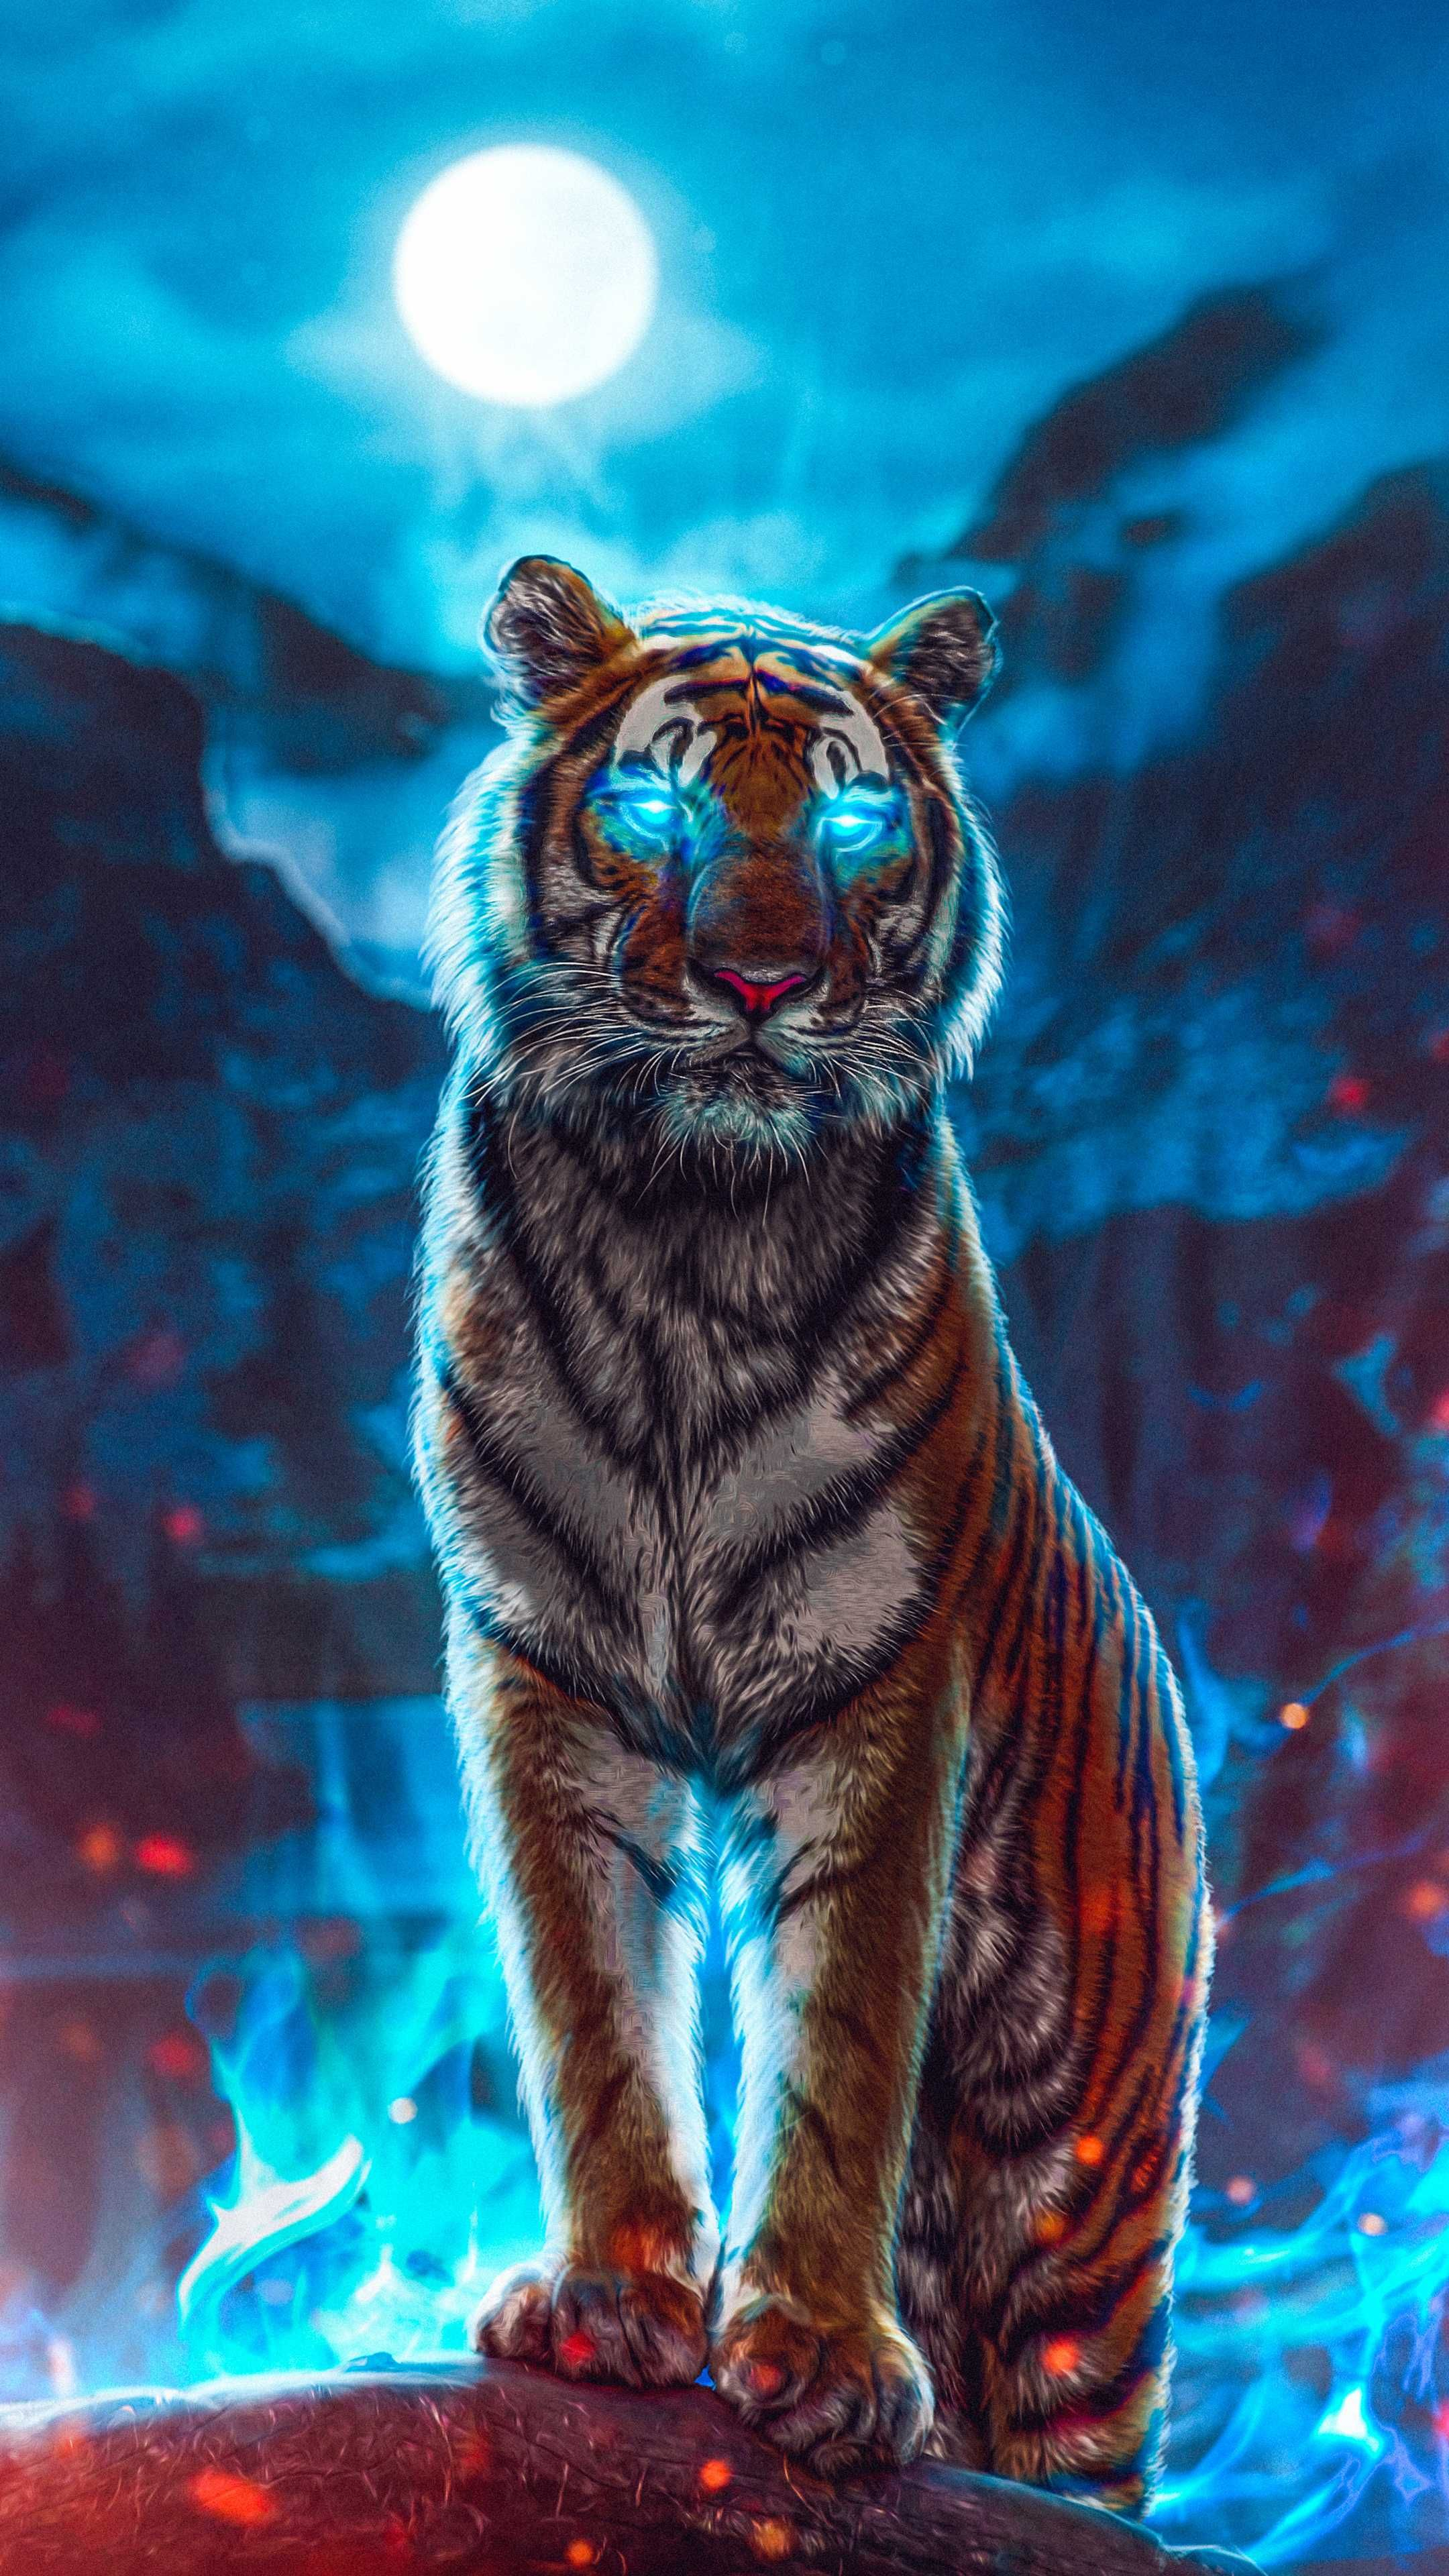 1582299867 in 2020 Tiger wallpaper iphone, Tiger